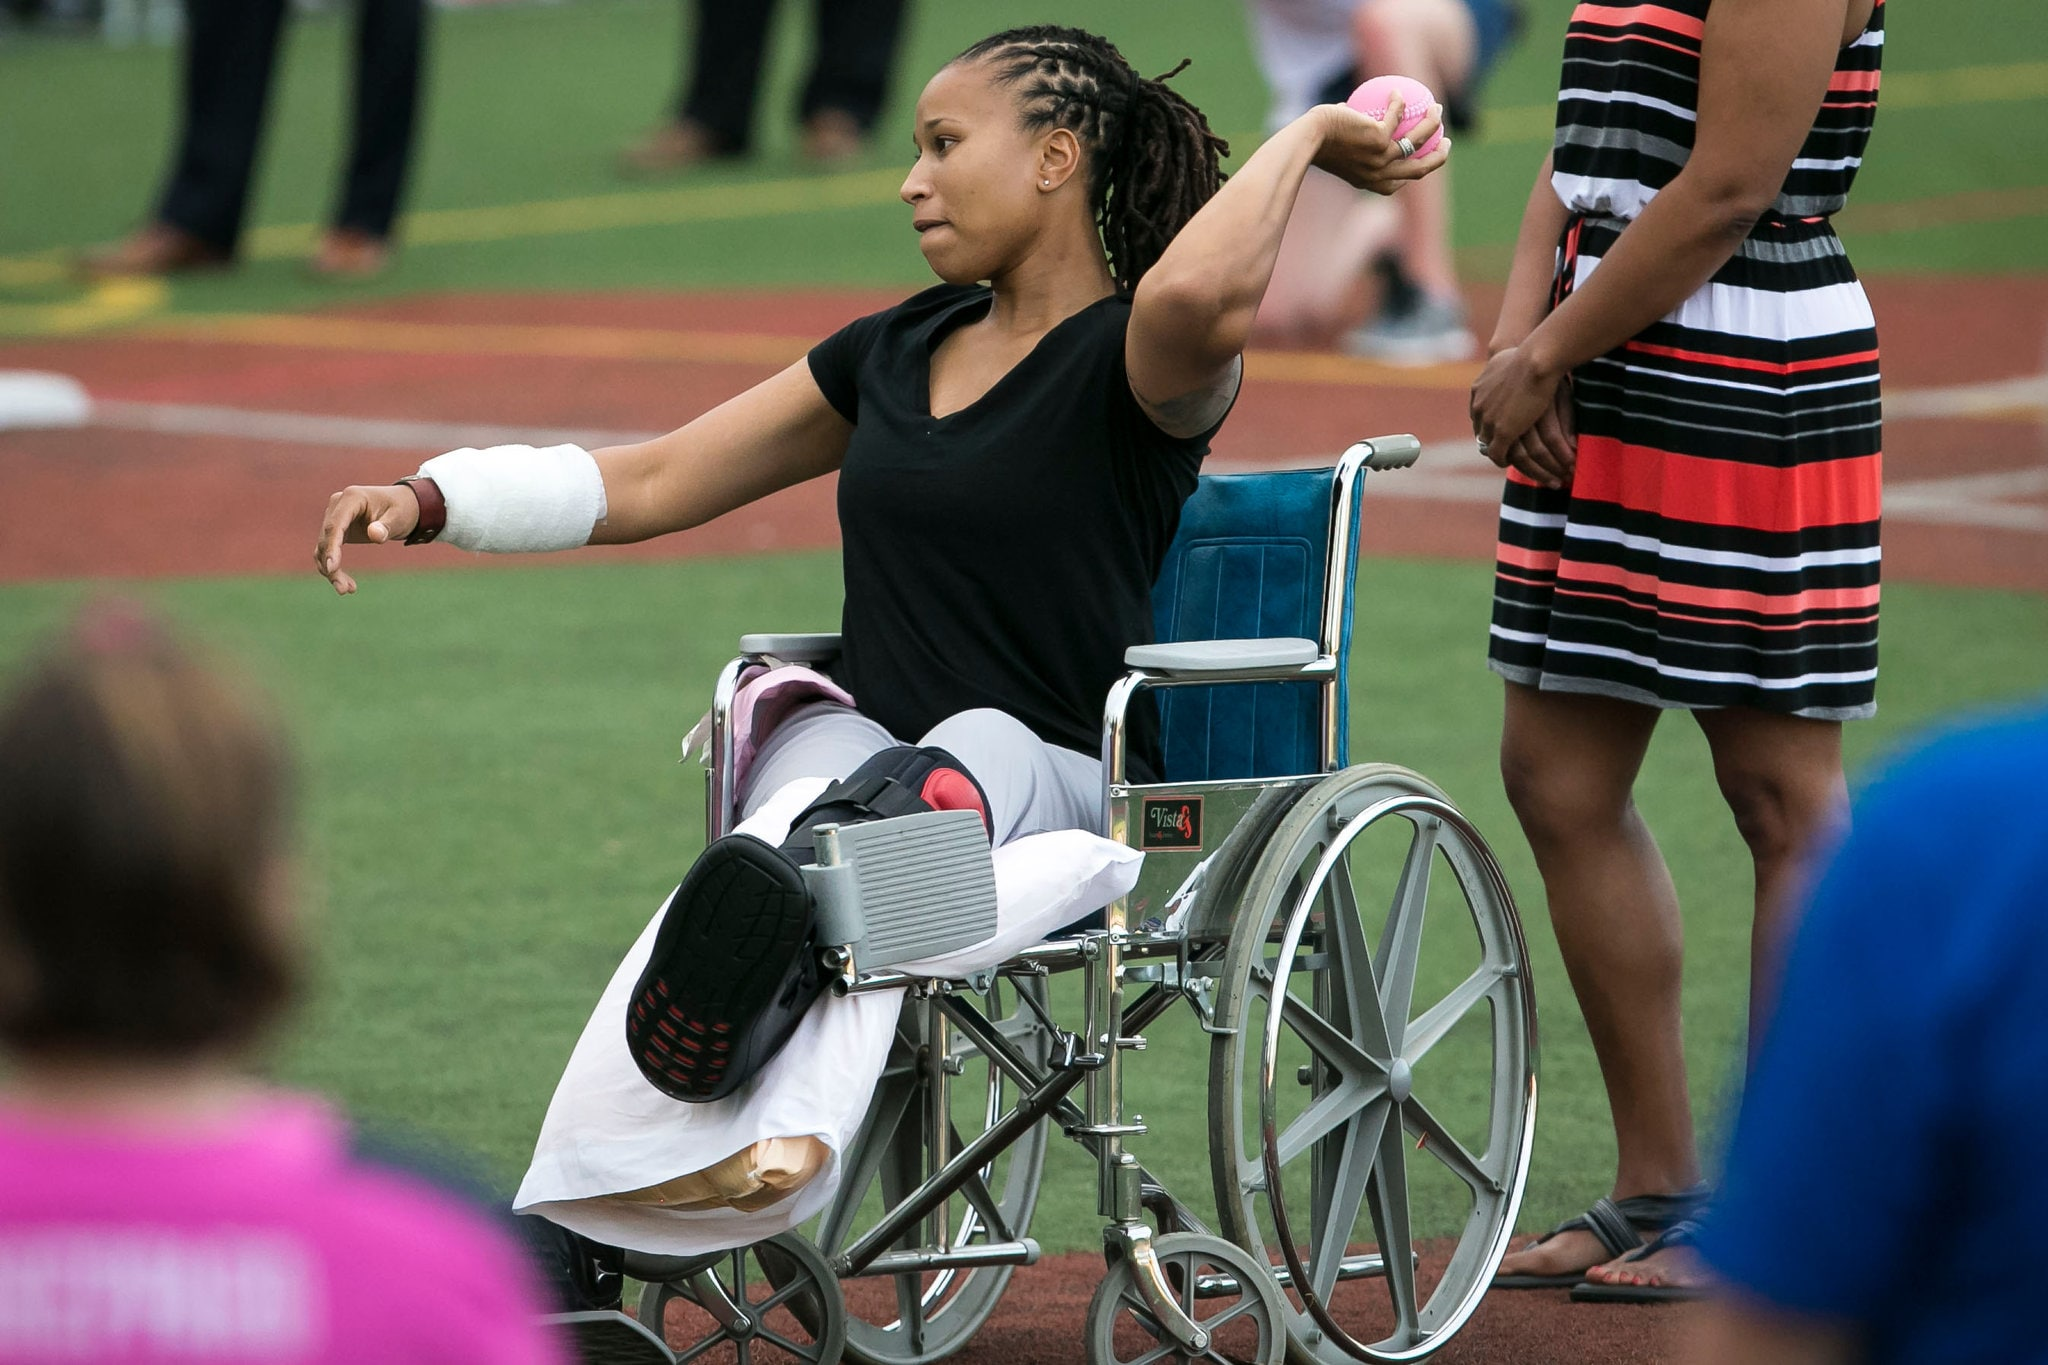 Crystal Griner, a Capitol Police officer injured in last week's shooting at a congressional baseball practice, threw the first pitch at the annual Congressional Women's Softball Game in Washington on Wednesday. (Photo: Al Drago/The New York Times)